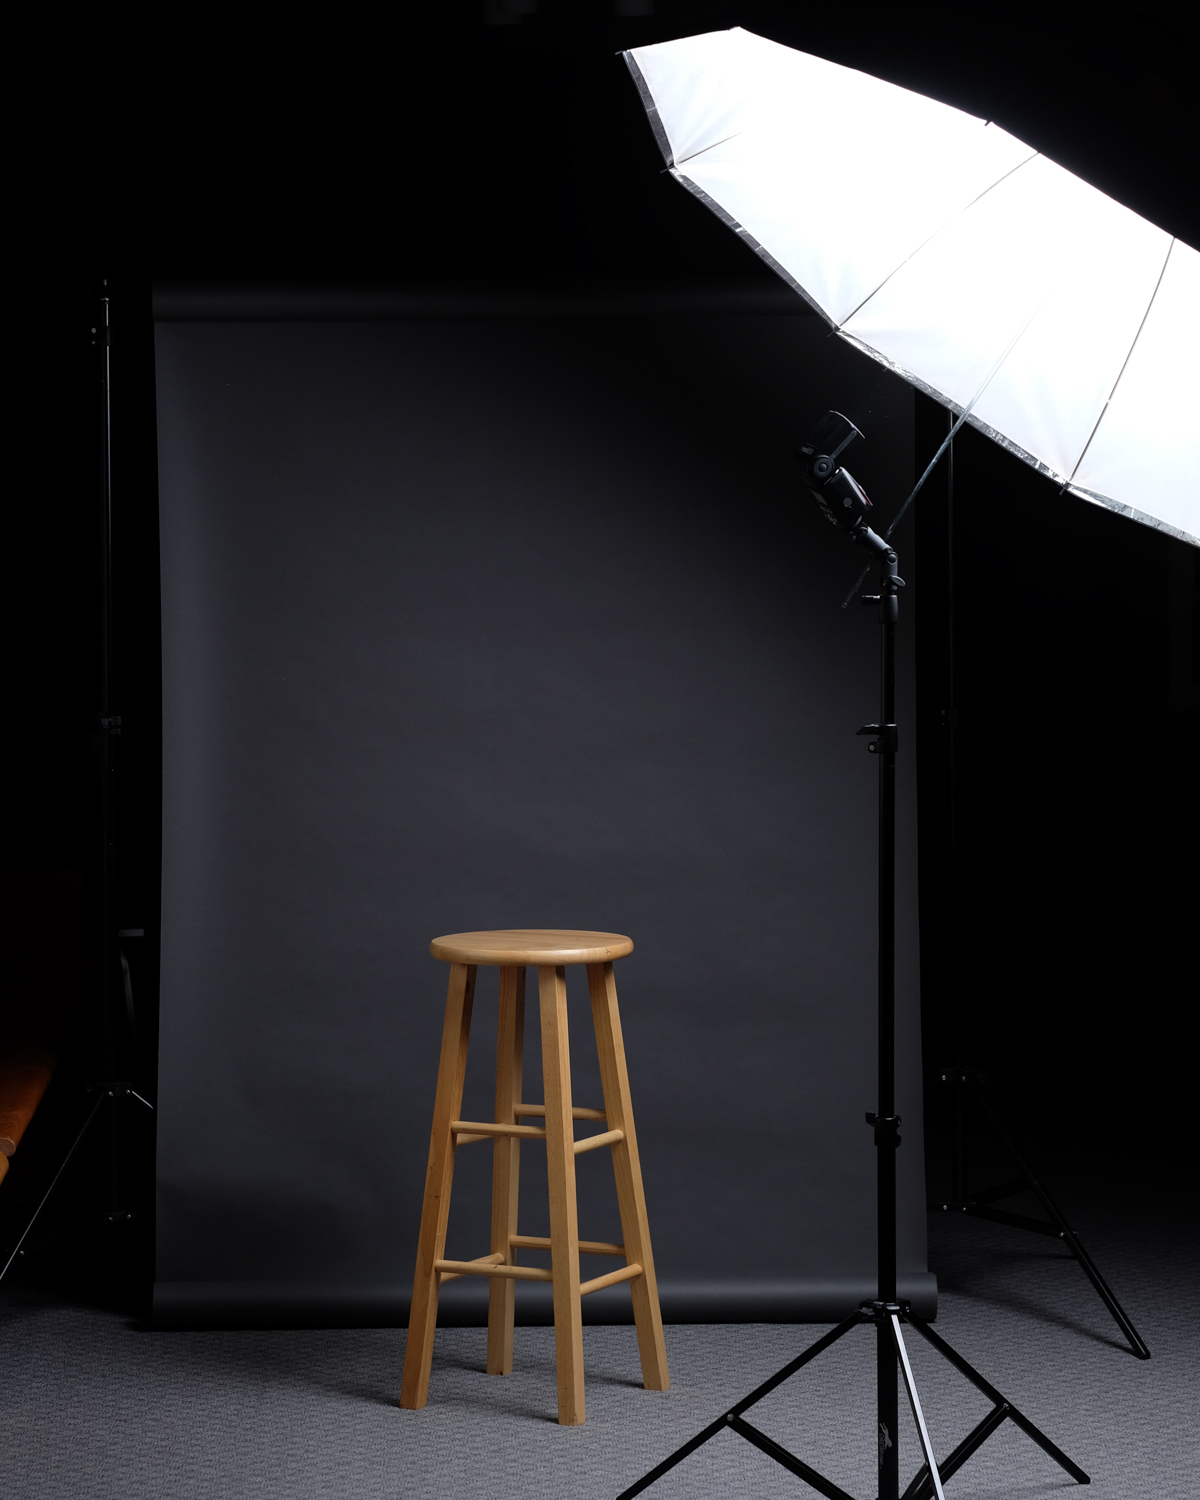 One Light Setup - 4 Tips for Helping People Feel Comfortable During Their Portrait Session